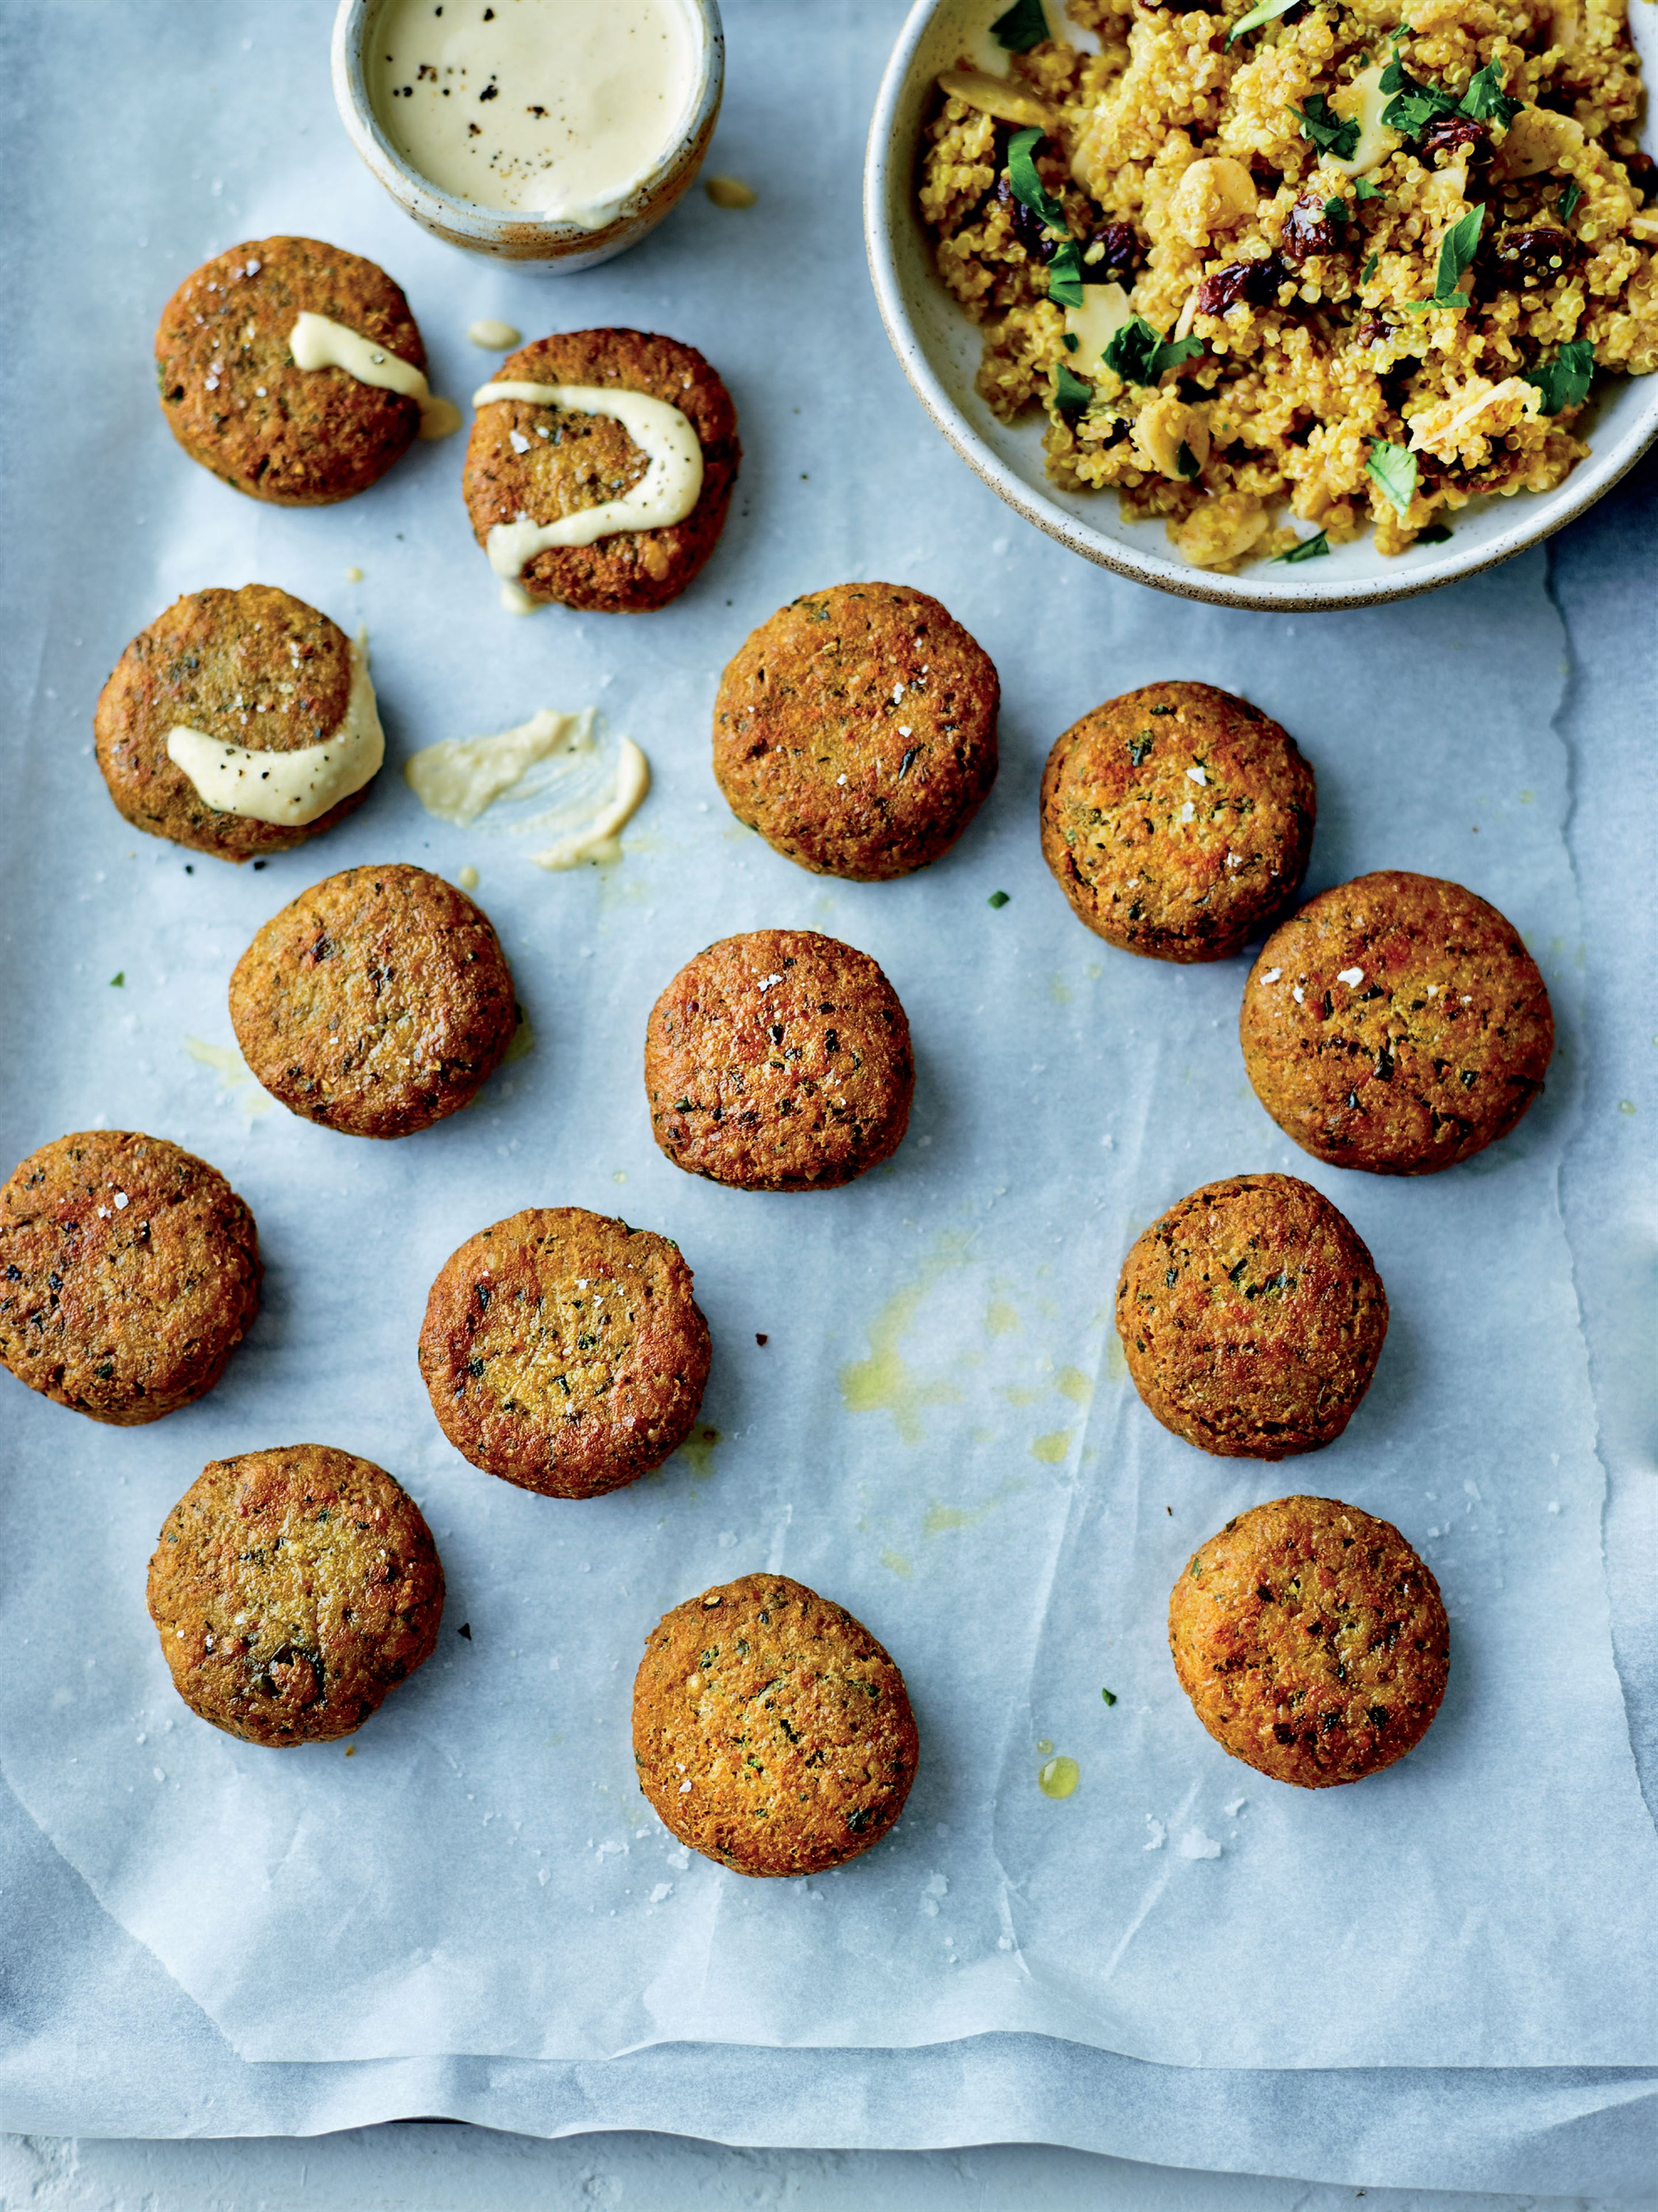 Immuno-falafels with quinoa and tahini